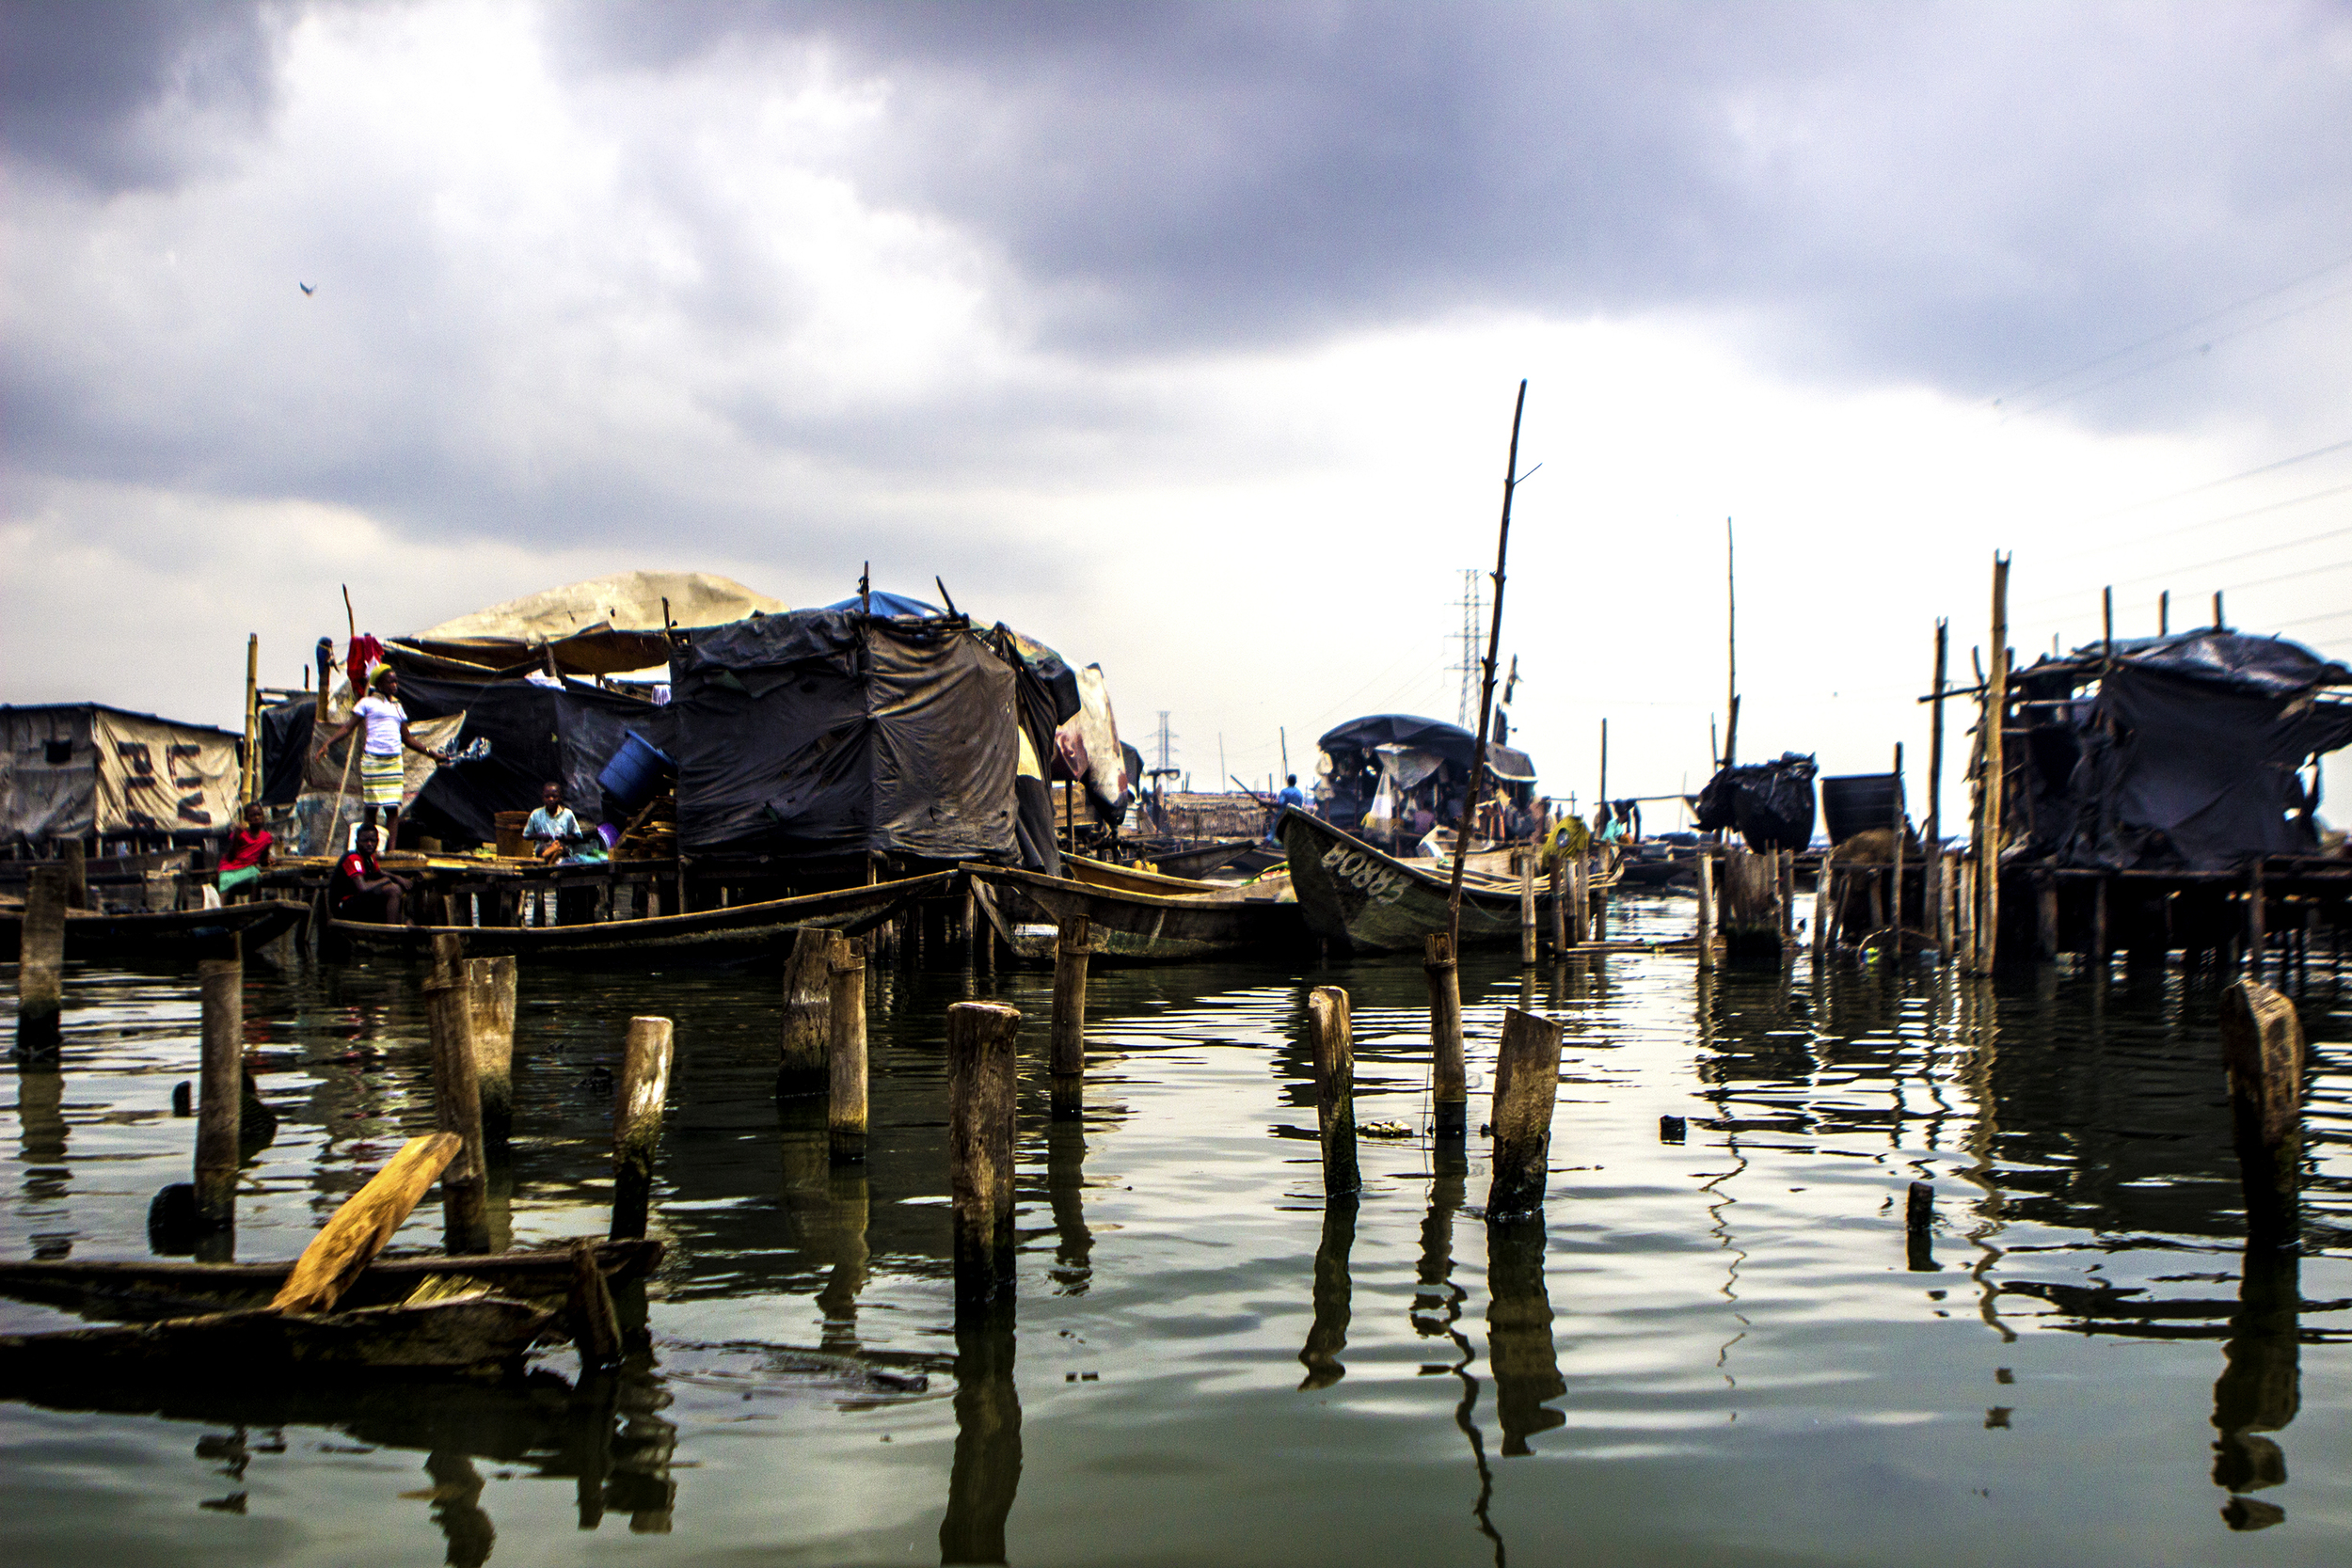 Lagos, Nigeria. Feb. 26, 2015. Many houses in the floating village of Makoko are surrounded by water. Locals use canoes to get around.